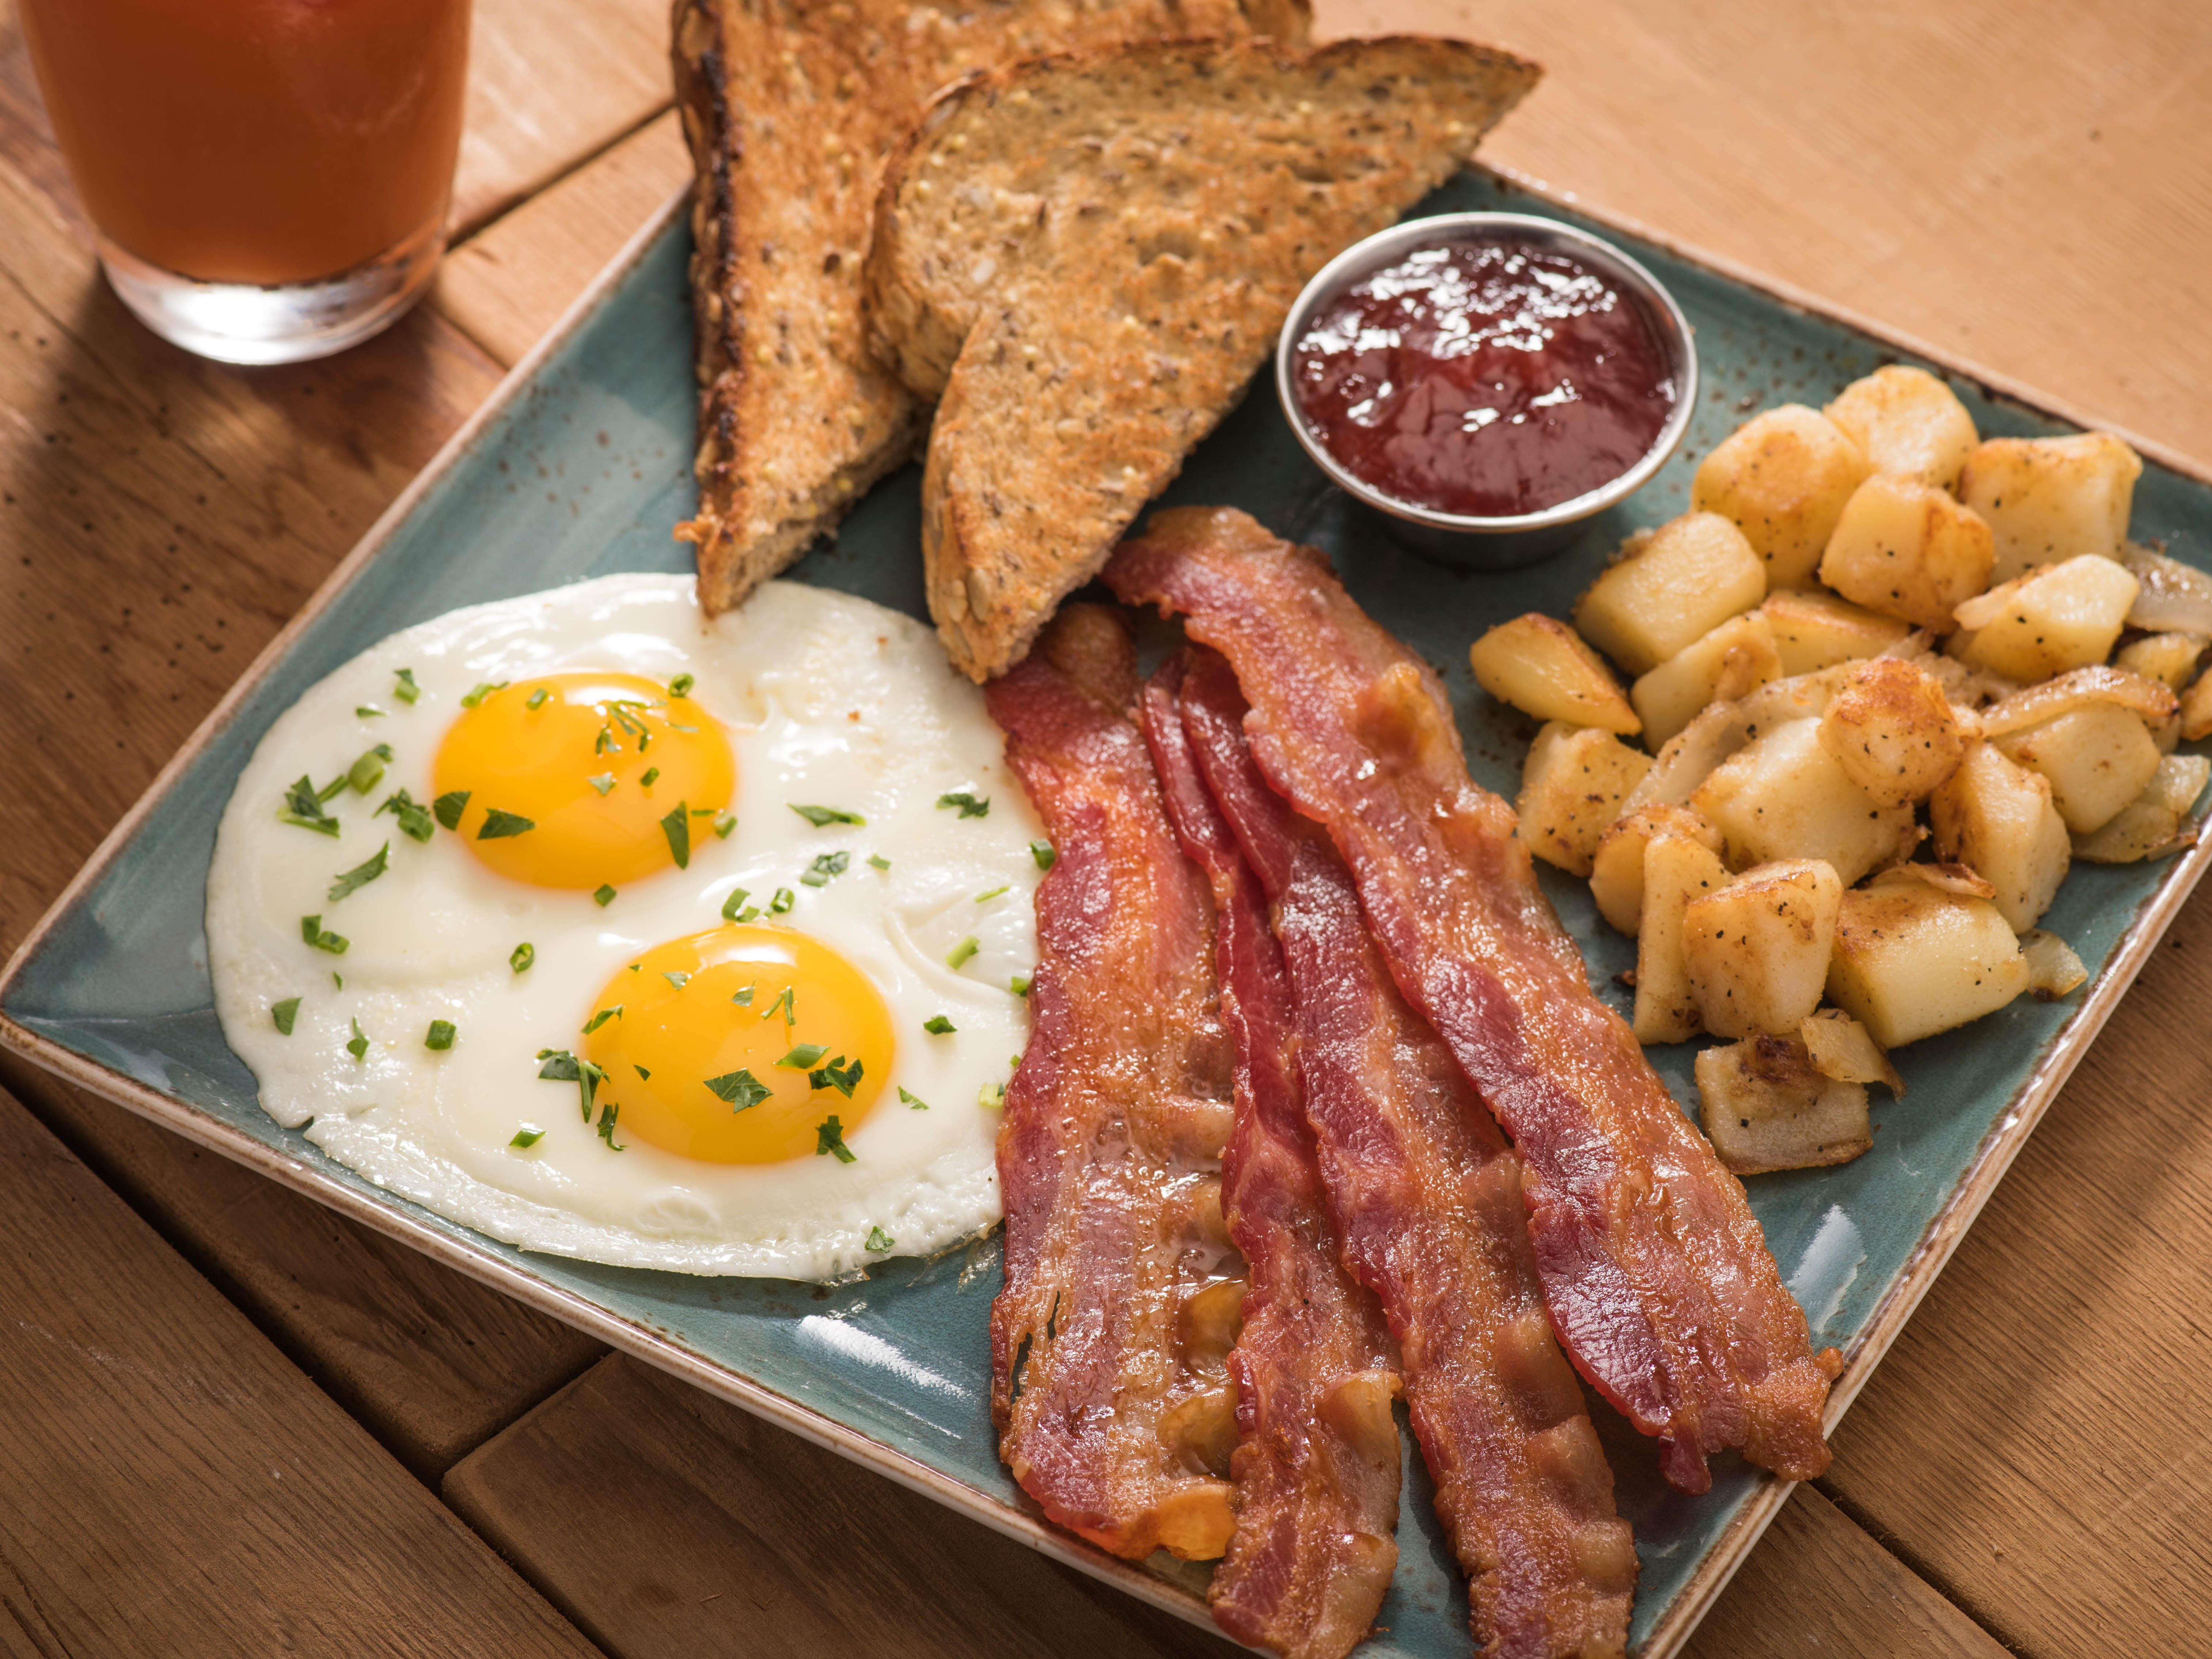 A traditional breakfast is on the menu at First Watch.